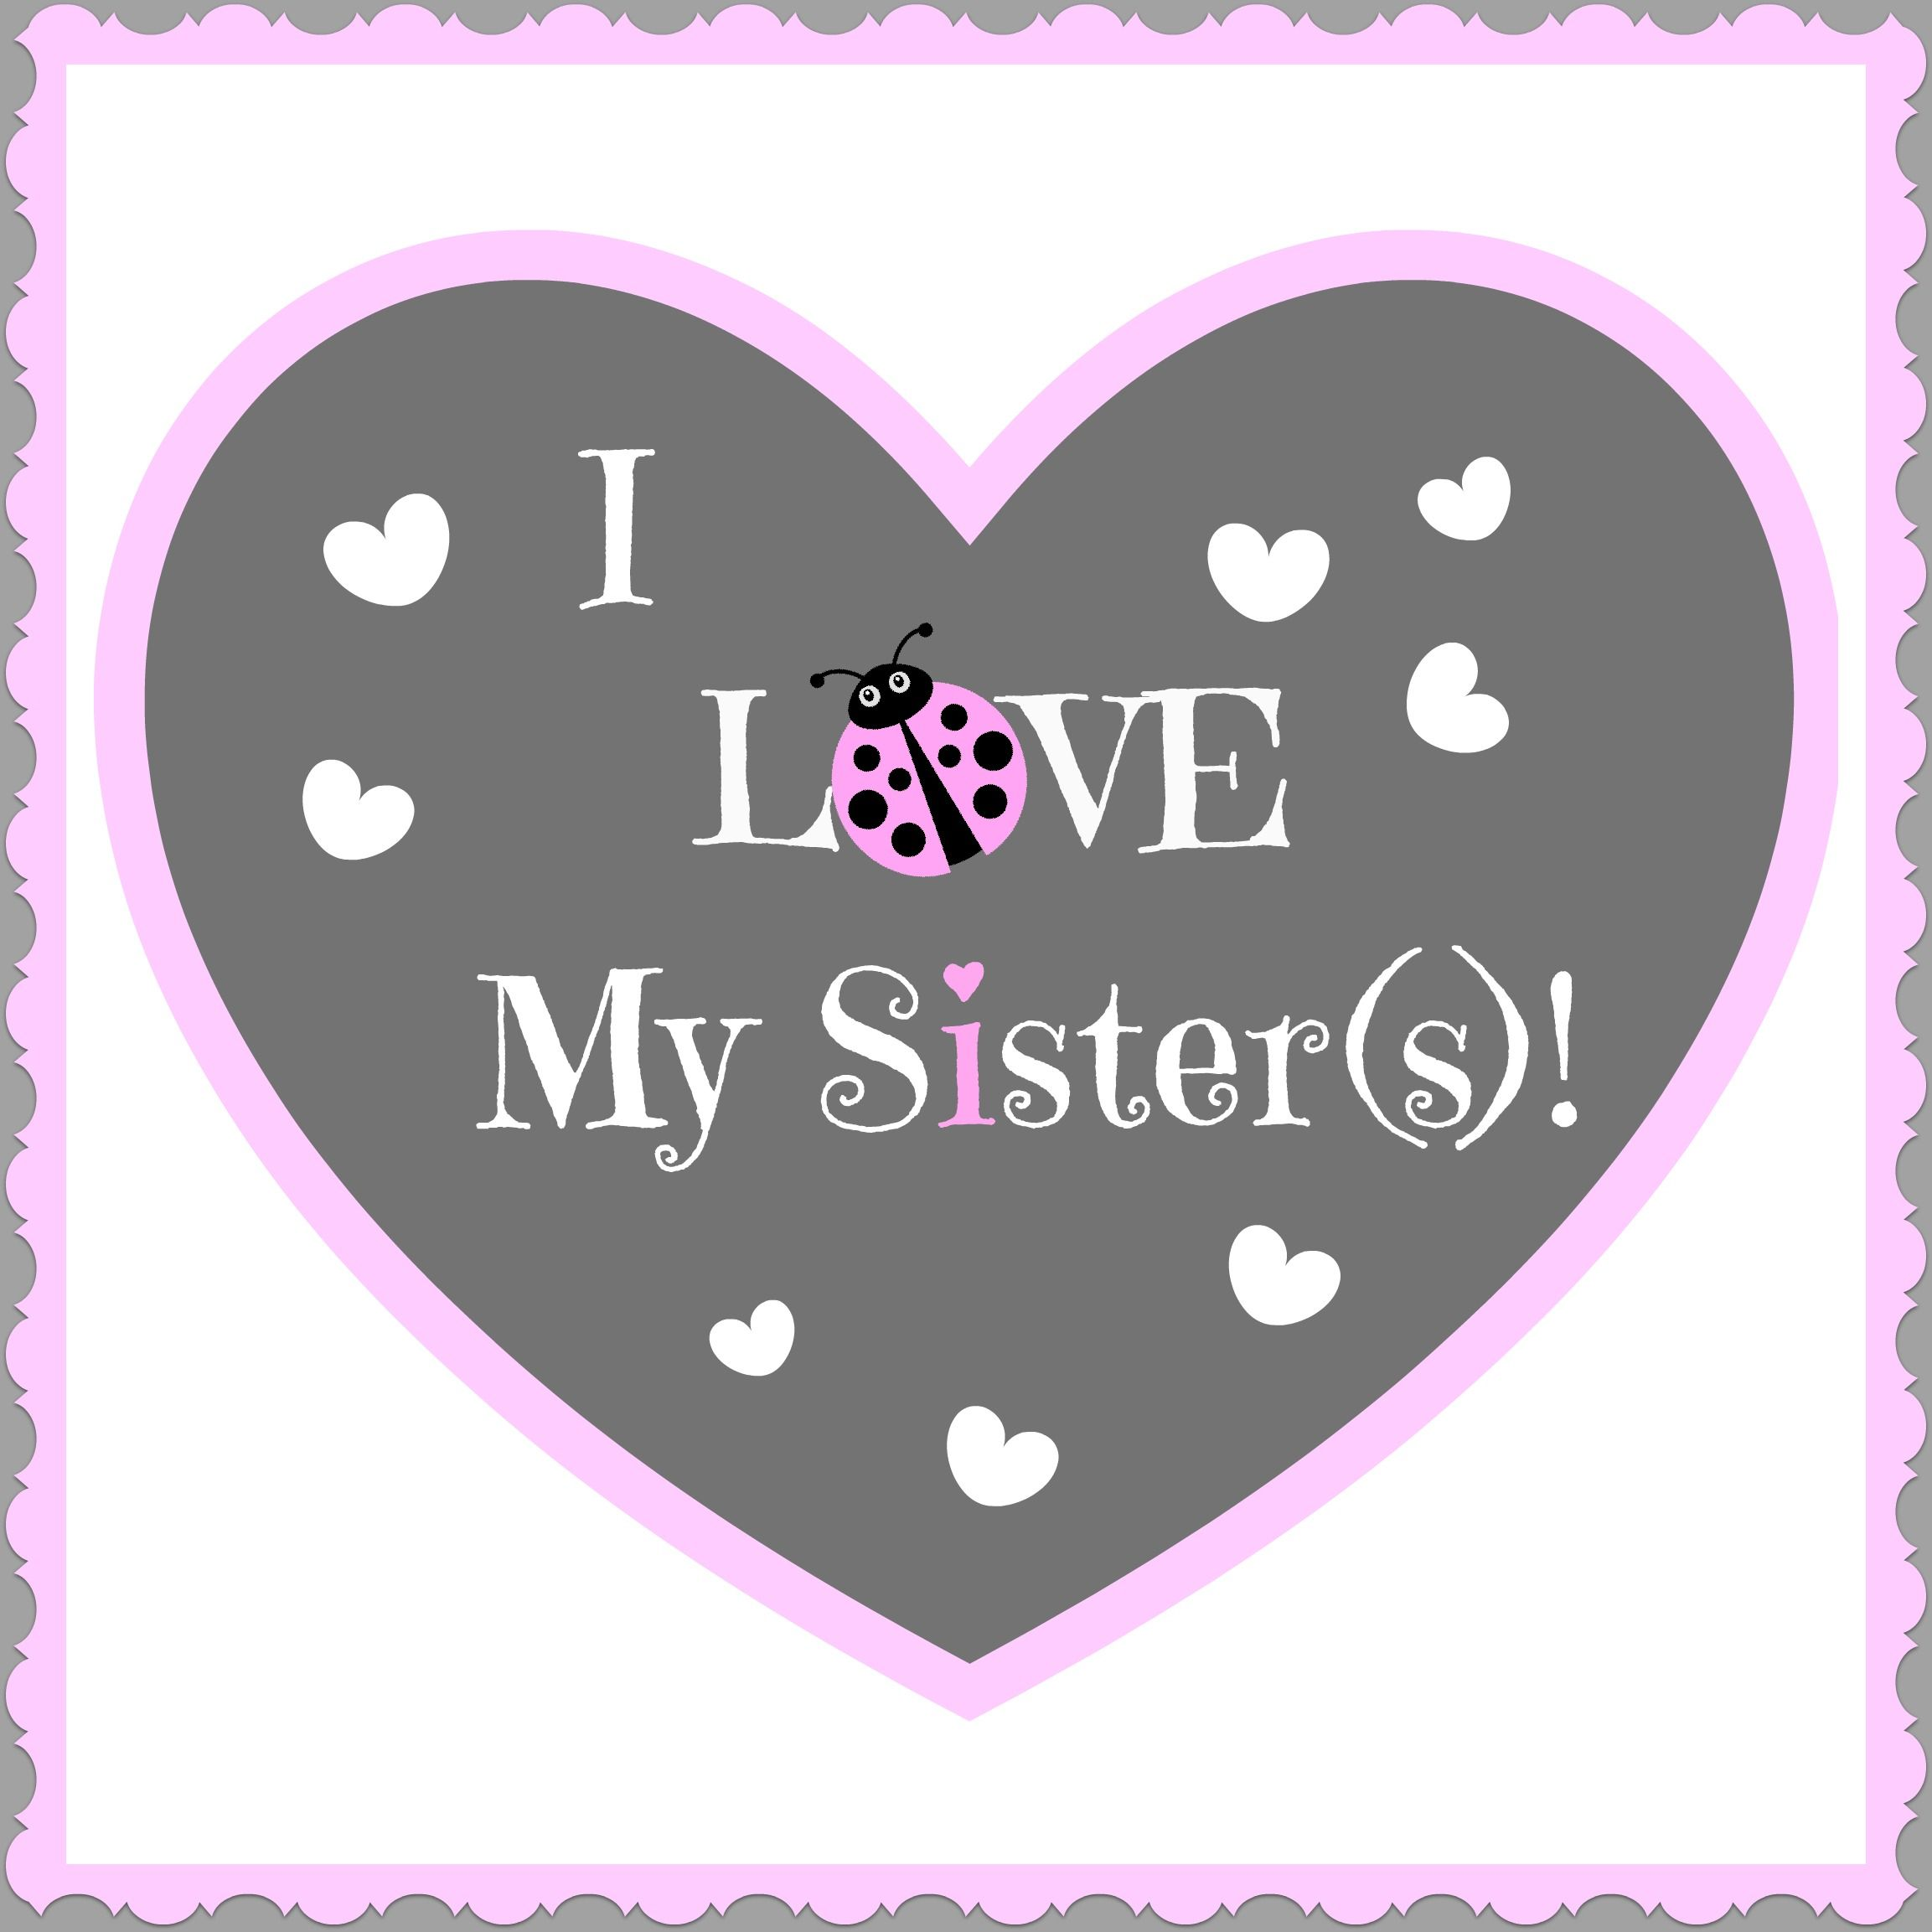 I Love My Twin Sister Quotes I Love My Sisters  Best Family Ideas  Pinterest  Blessings